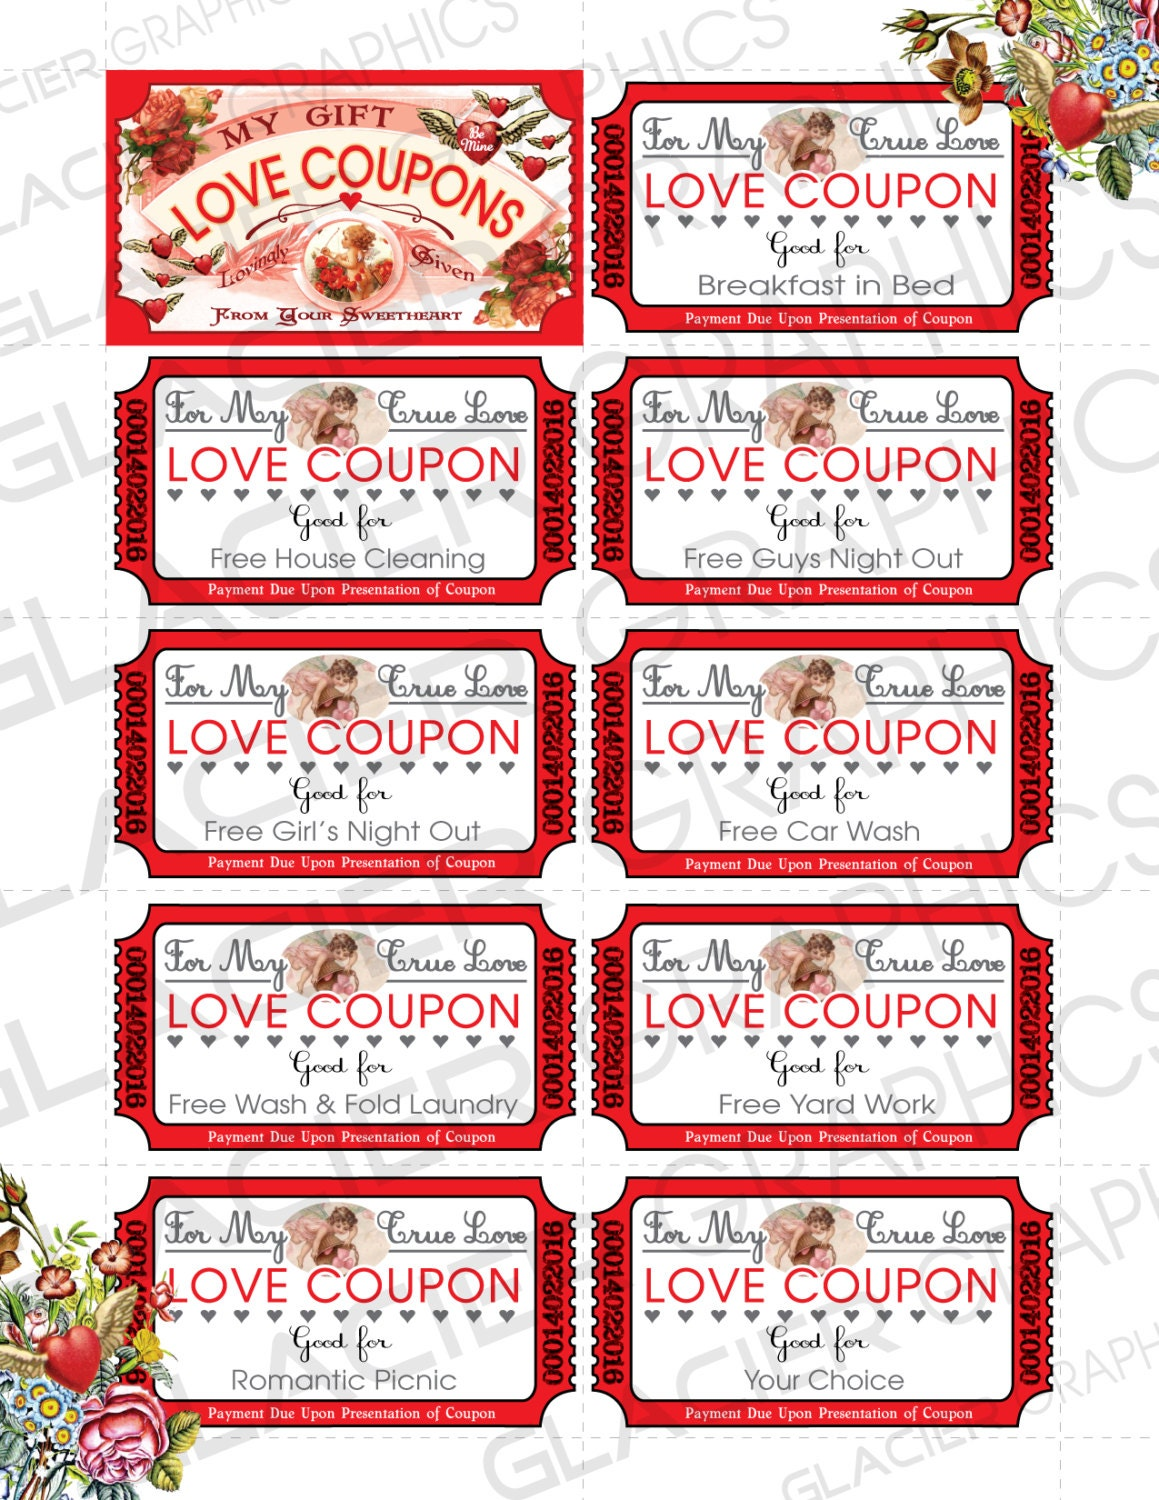 Valentine love coupons business card template valentine for Coupon book template for boyfriend